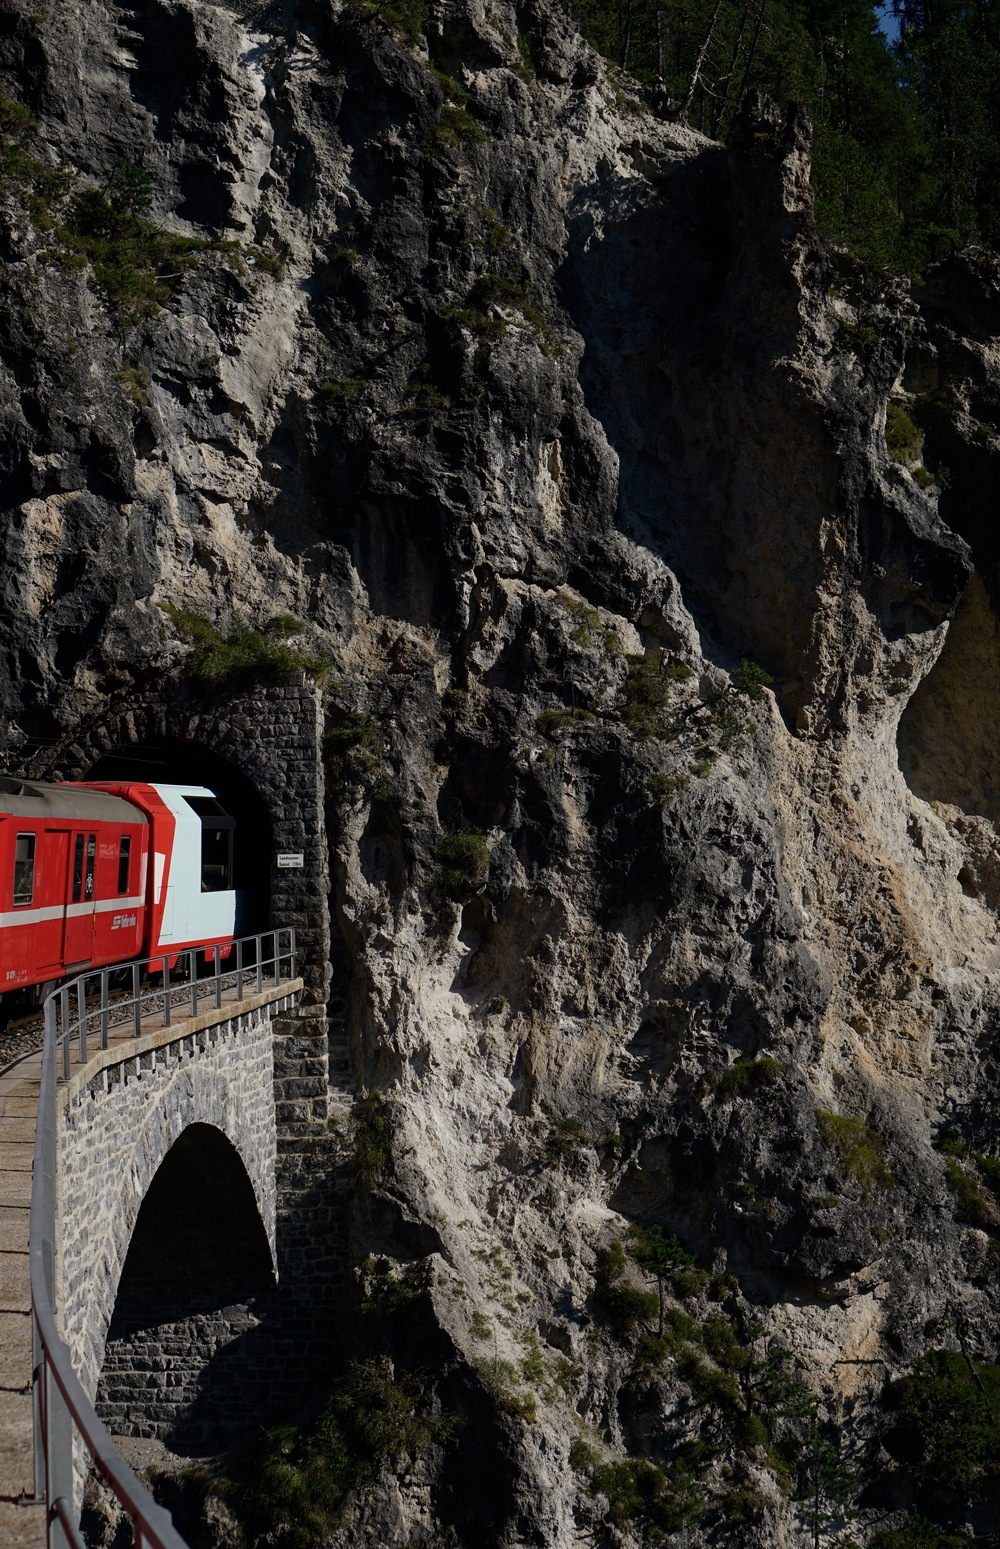 The BEAUTIFUL Bernina Express railway